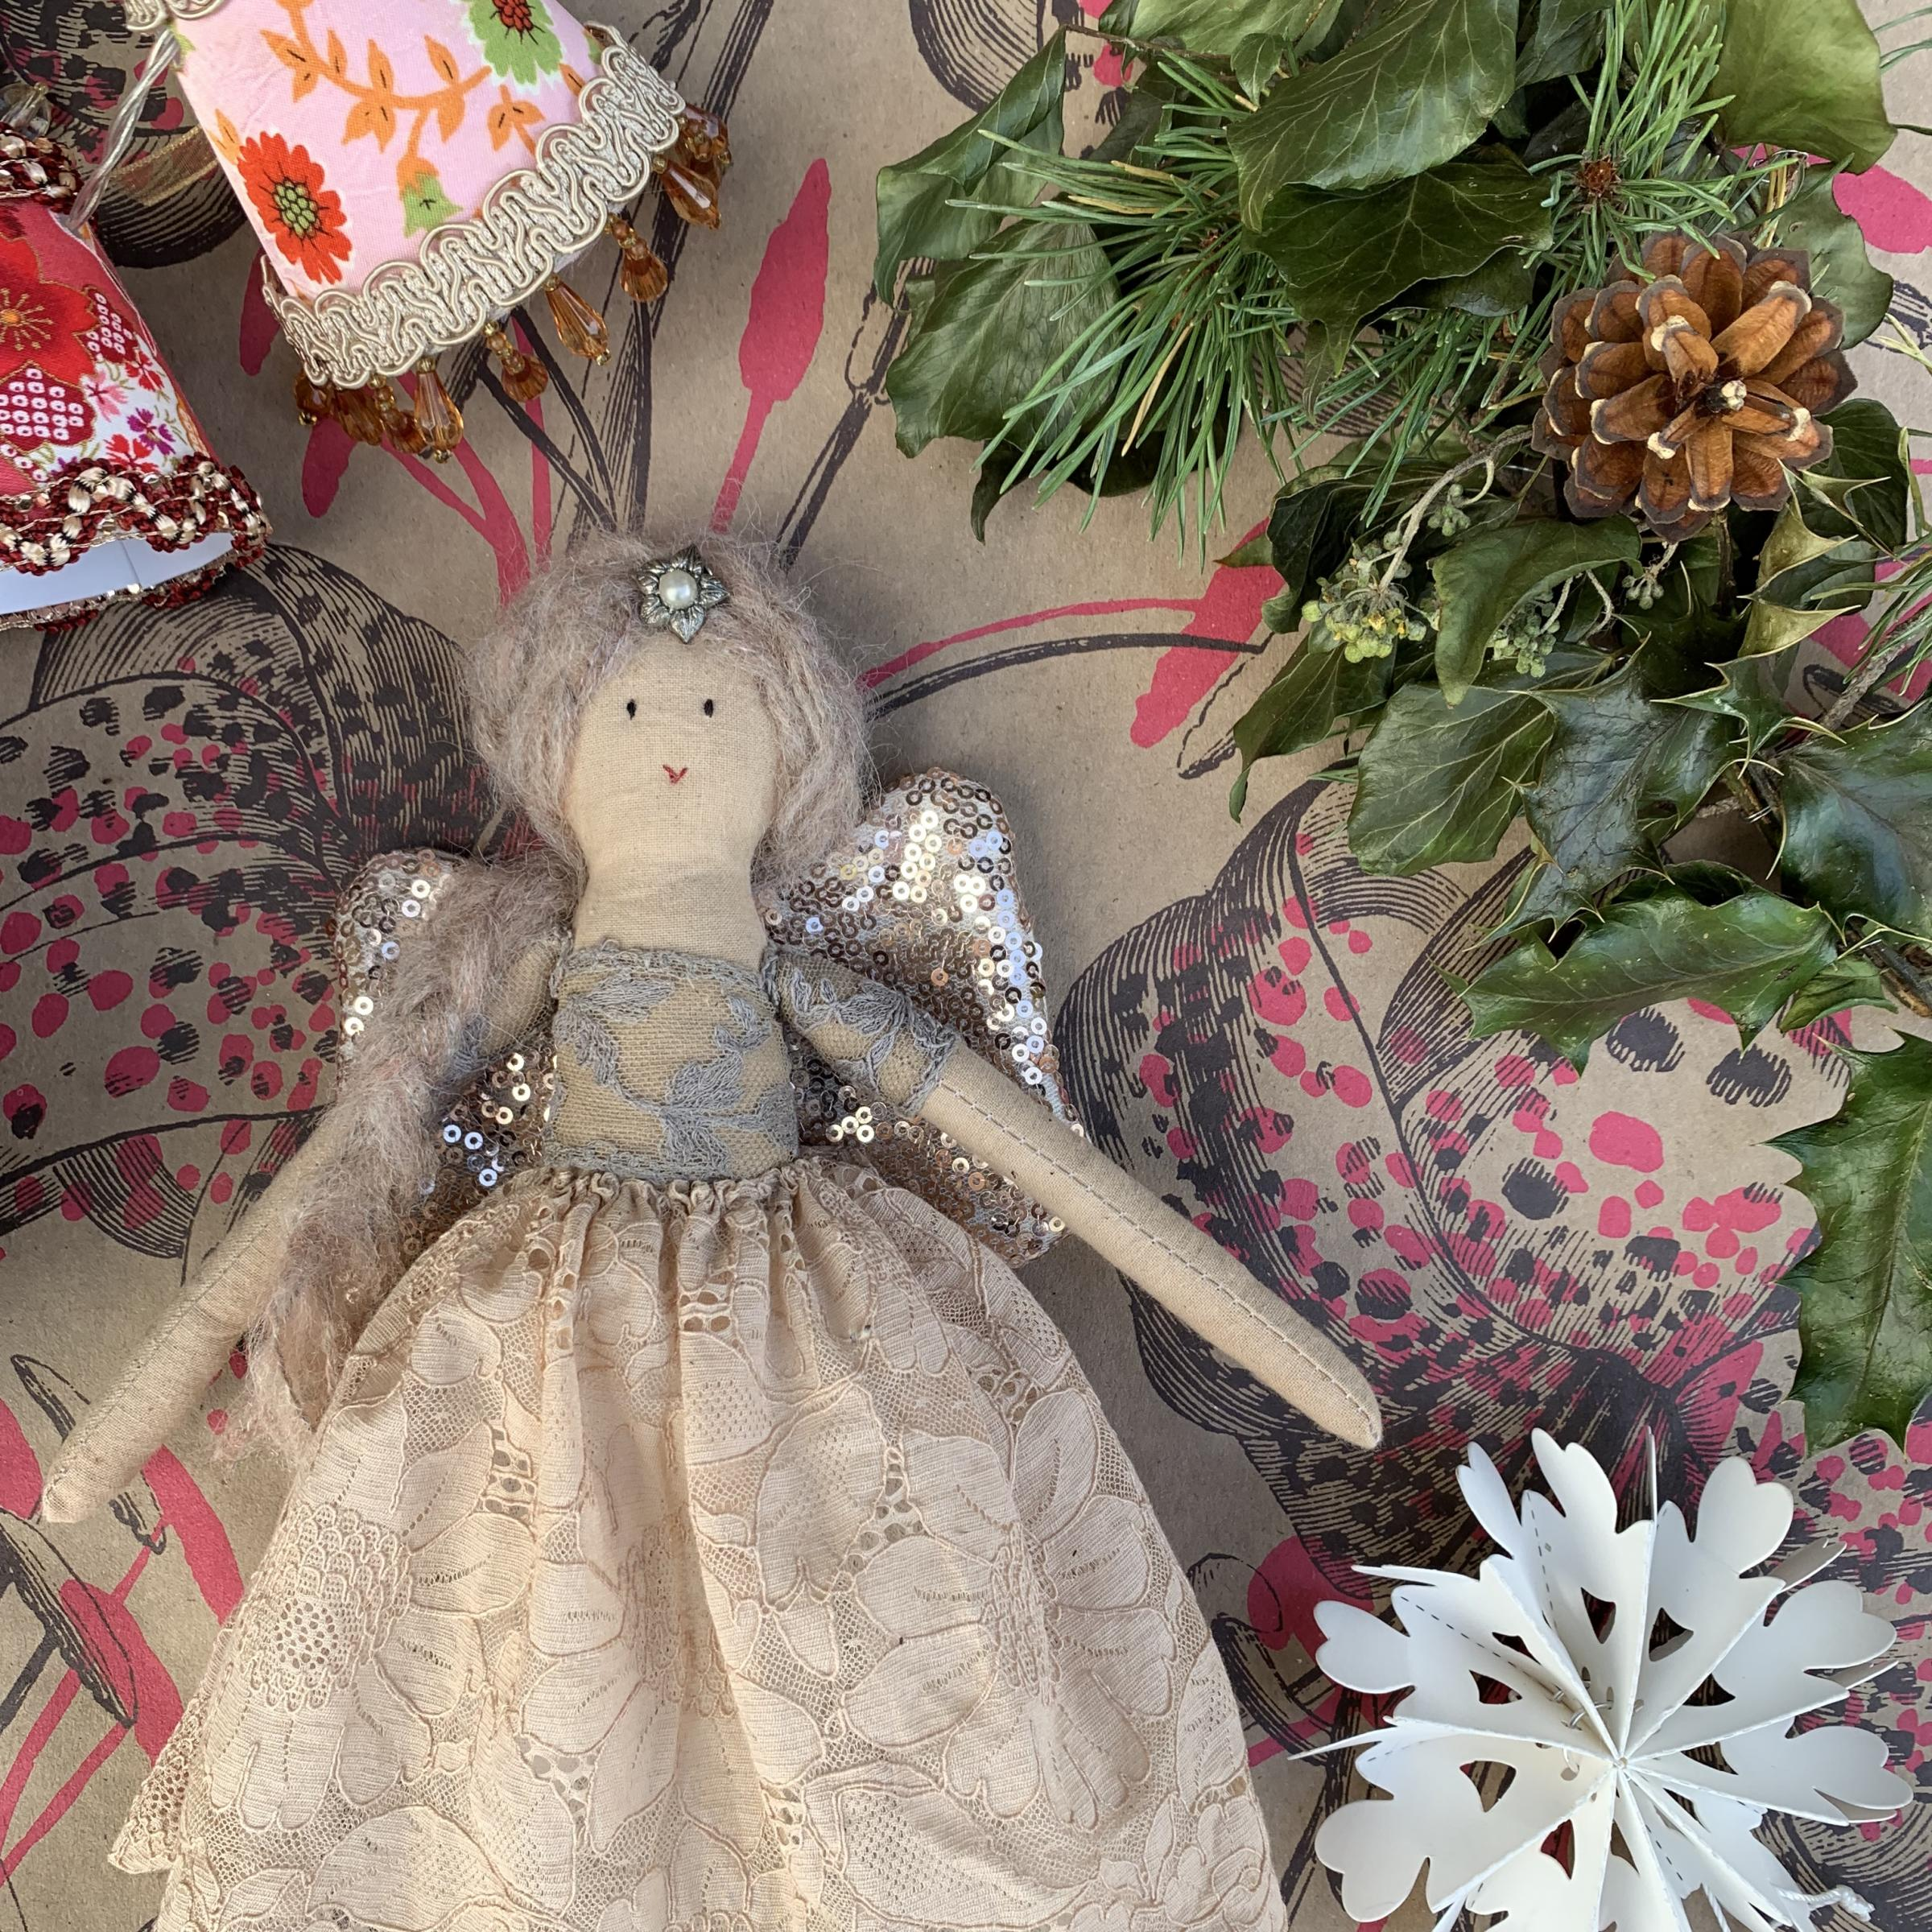 Malthouse Collective Rosablue Christmas Fairy Making Workshop